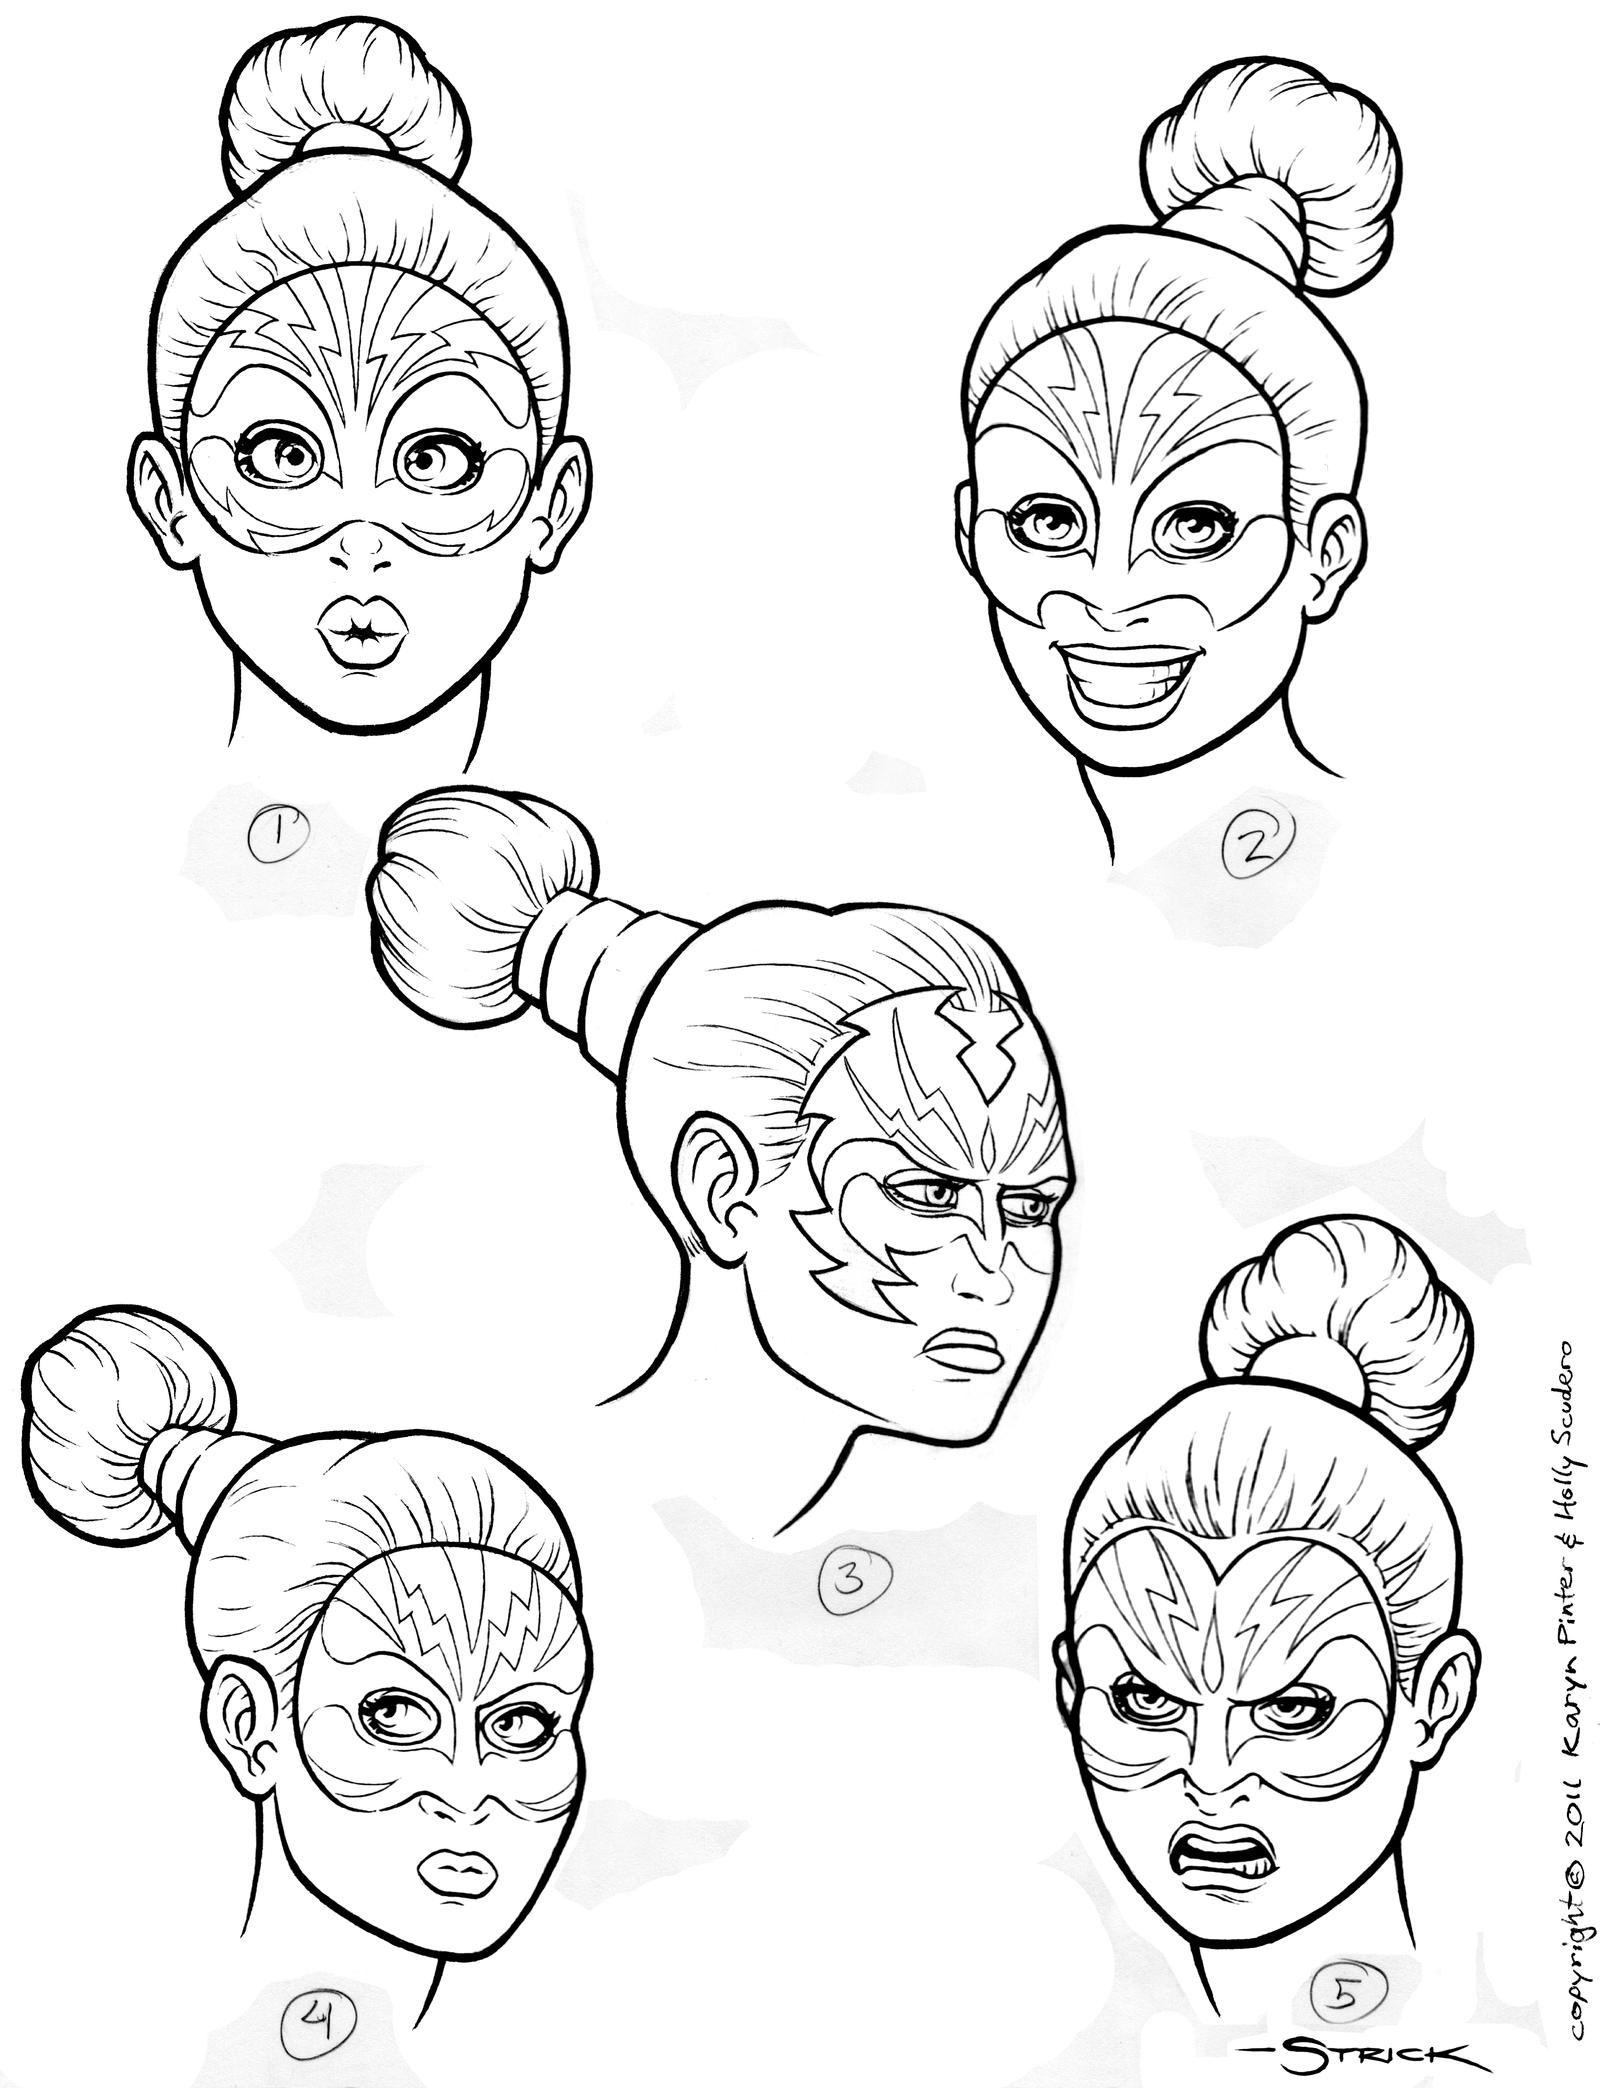 CHARGE Headshots ink by strickart